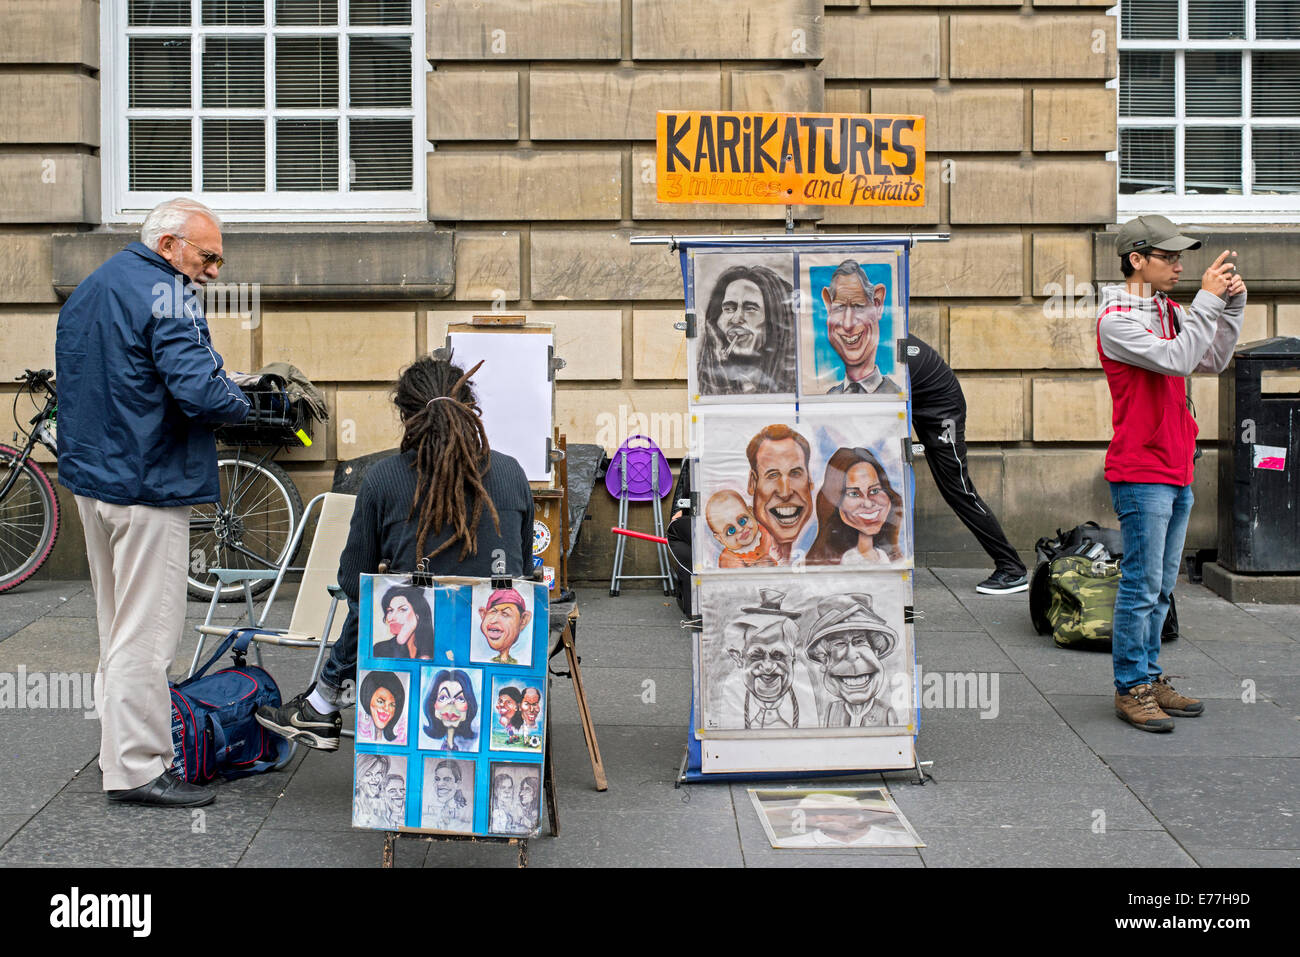 A street artist with examples of his work plies his trade on the High Street in Edinburgh. - Stock Image